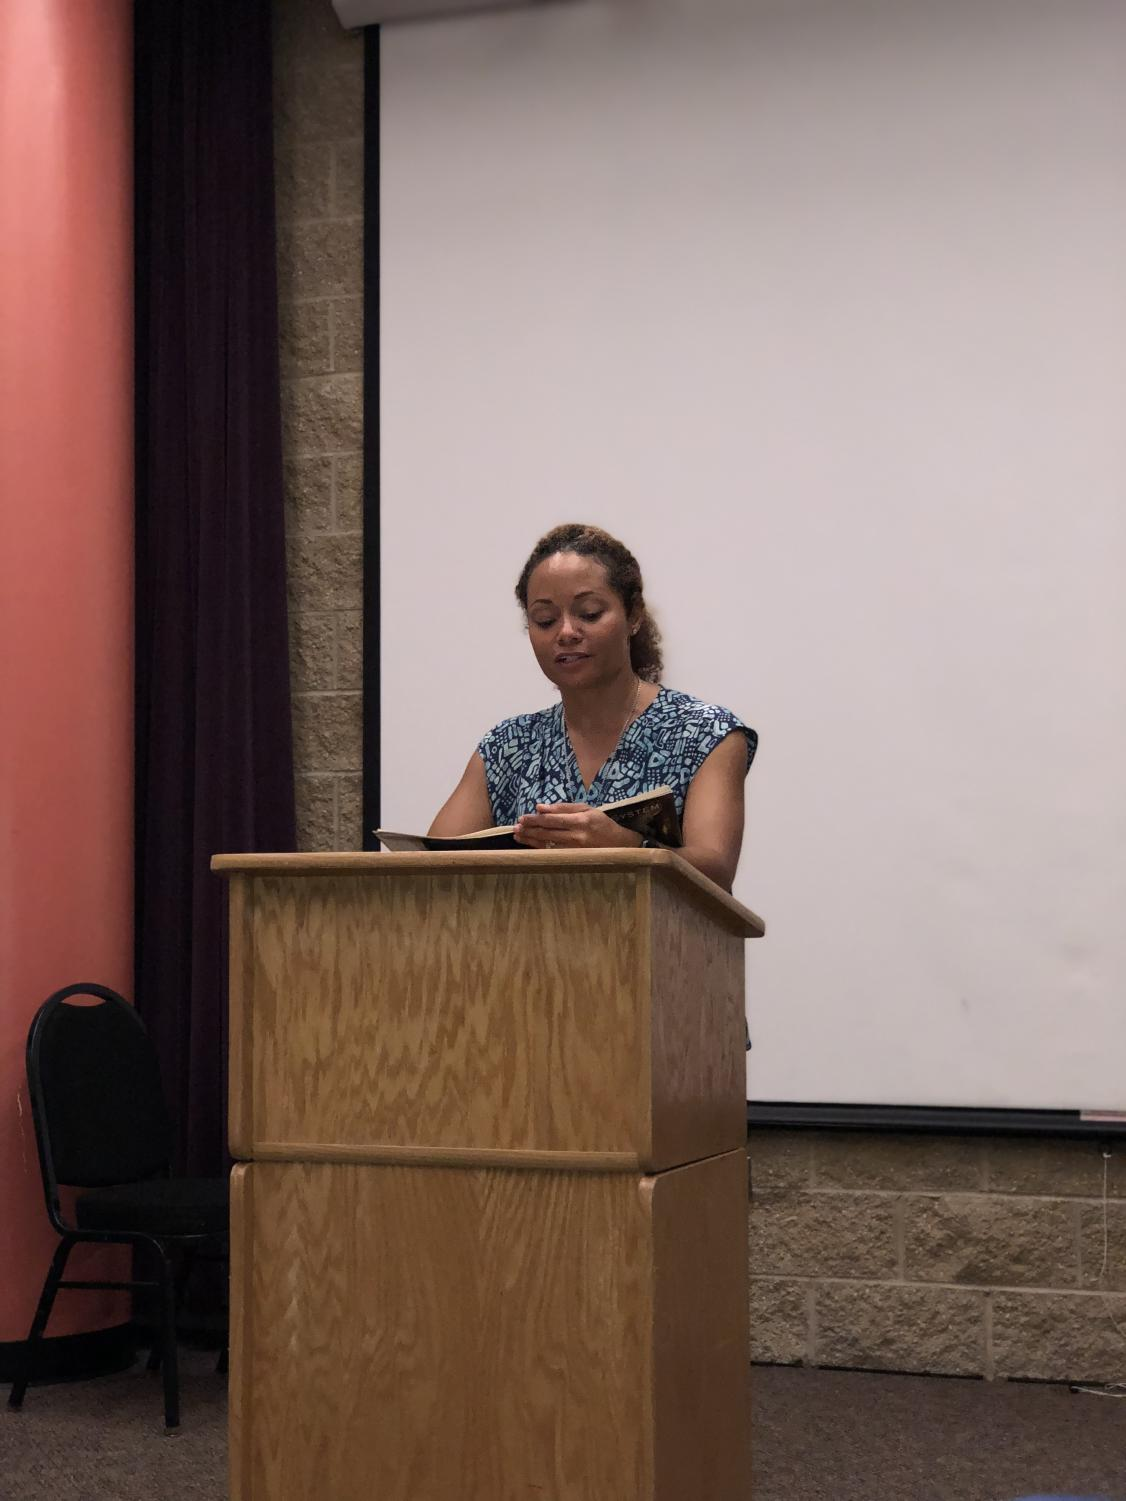 C.M. Burroughs reciting her poetry to the audience during the reading series at ECC.